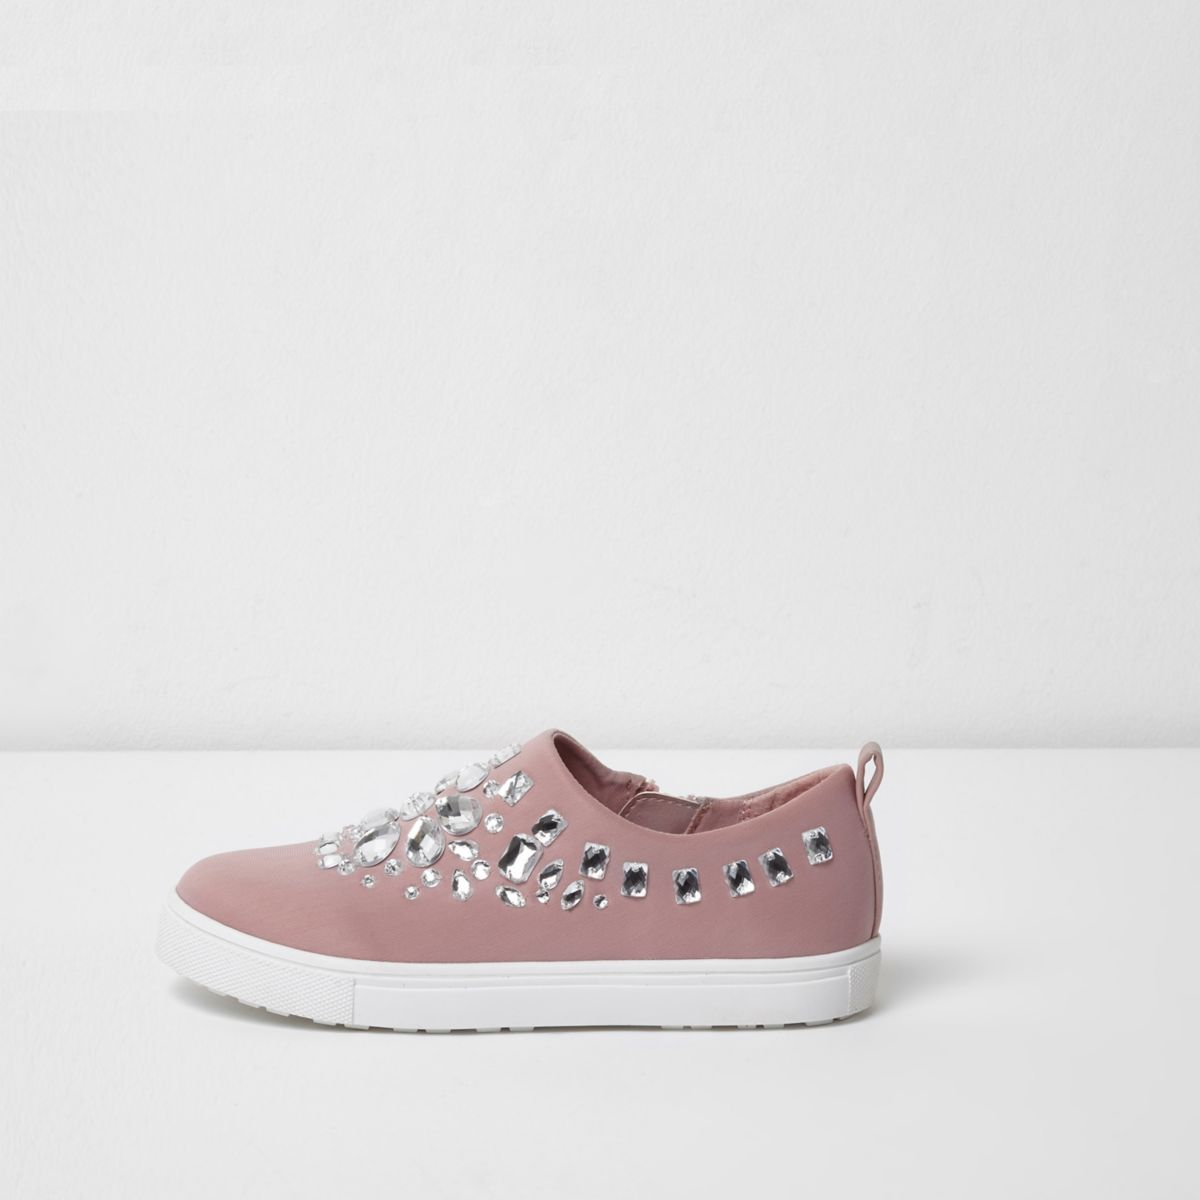 Girls pink diamante slip on plimsolls